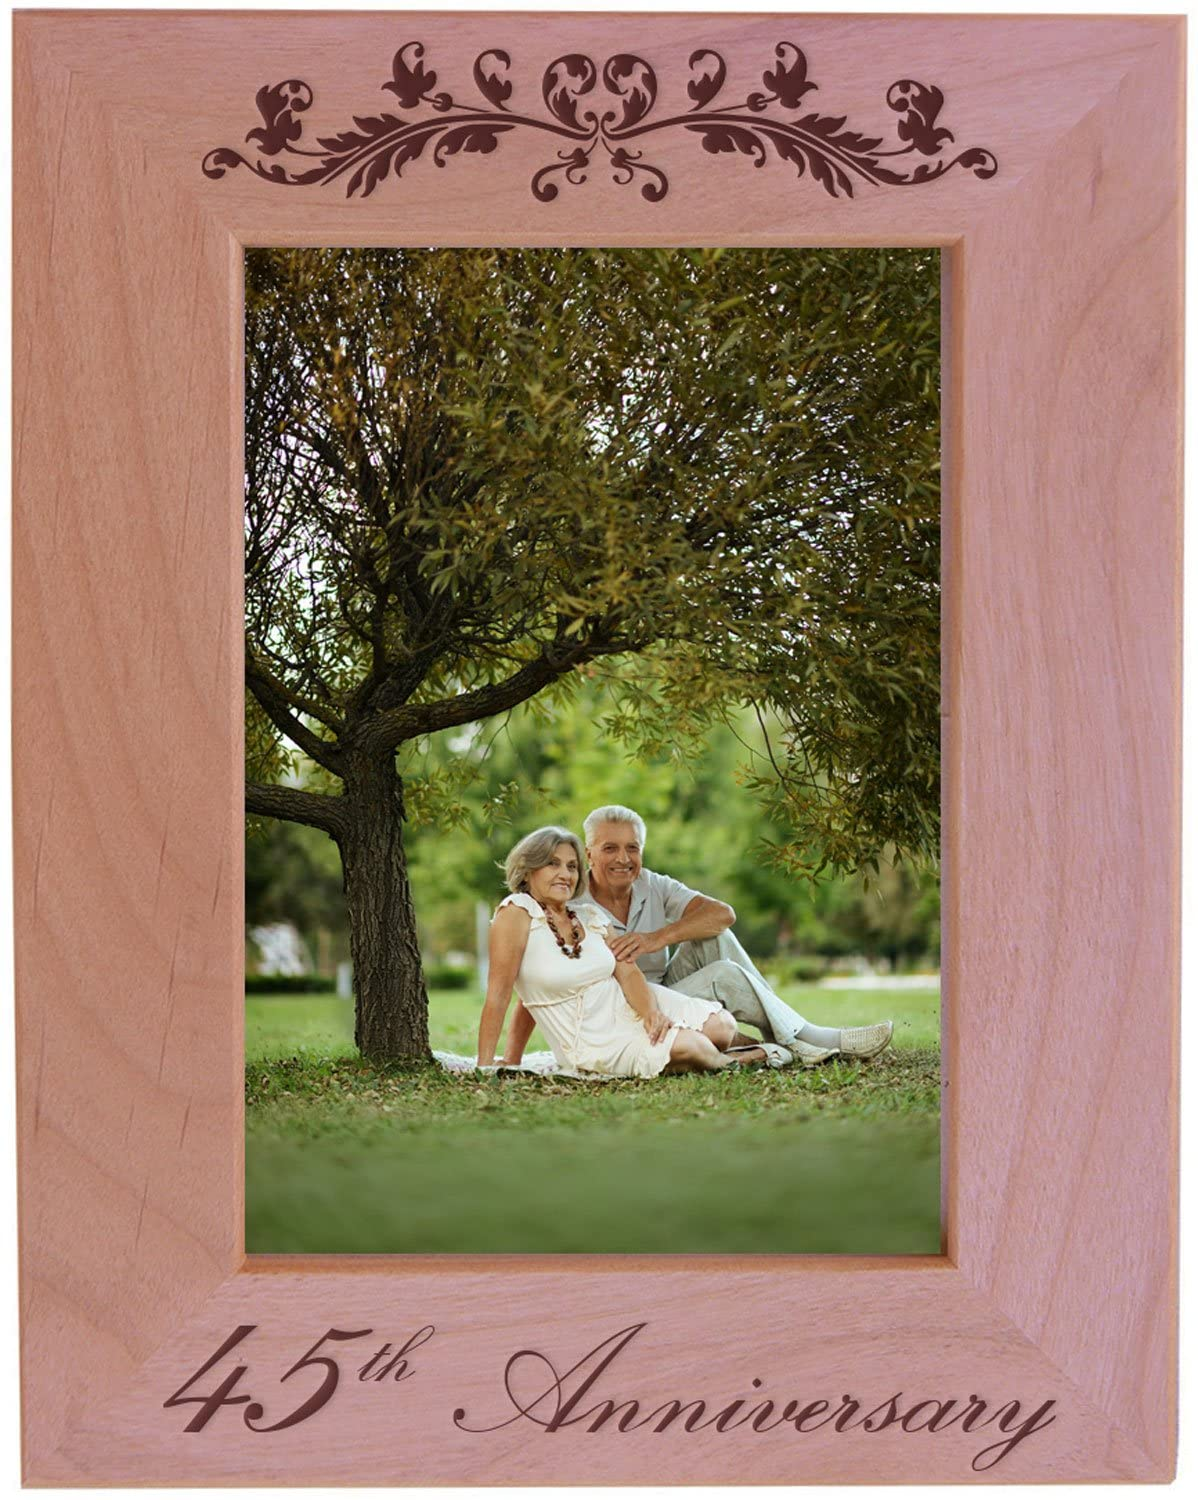 CustomGiftsNow 45th Anniversary - Engraved Natural Alder Wood Tabletop/Hanging Wooden Wedding Picture Frame (5x7-inch Vertical)